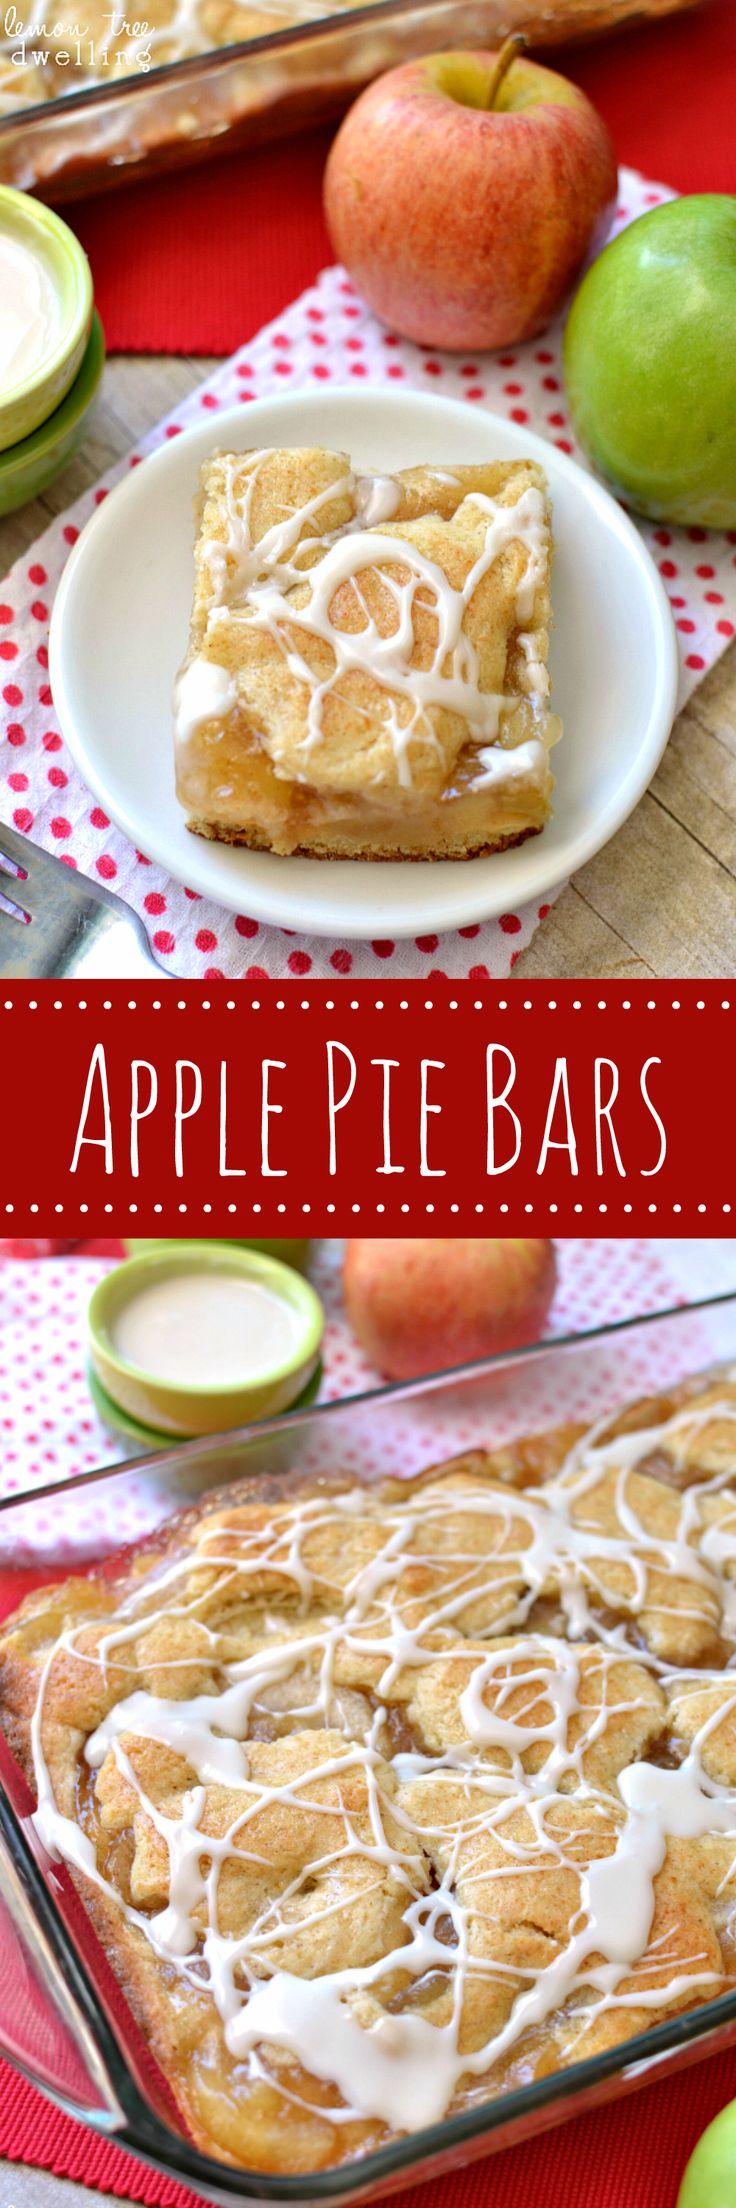 Apple Pie Bars - easy, delicious, and perfect for fall!